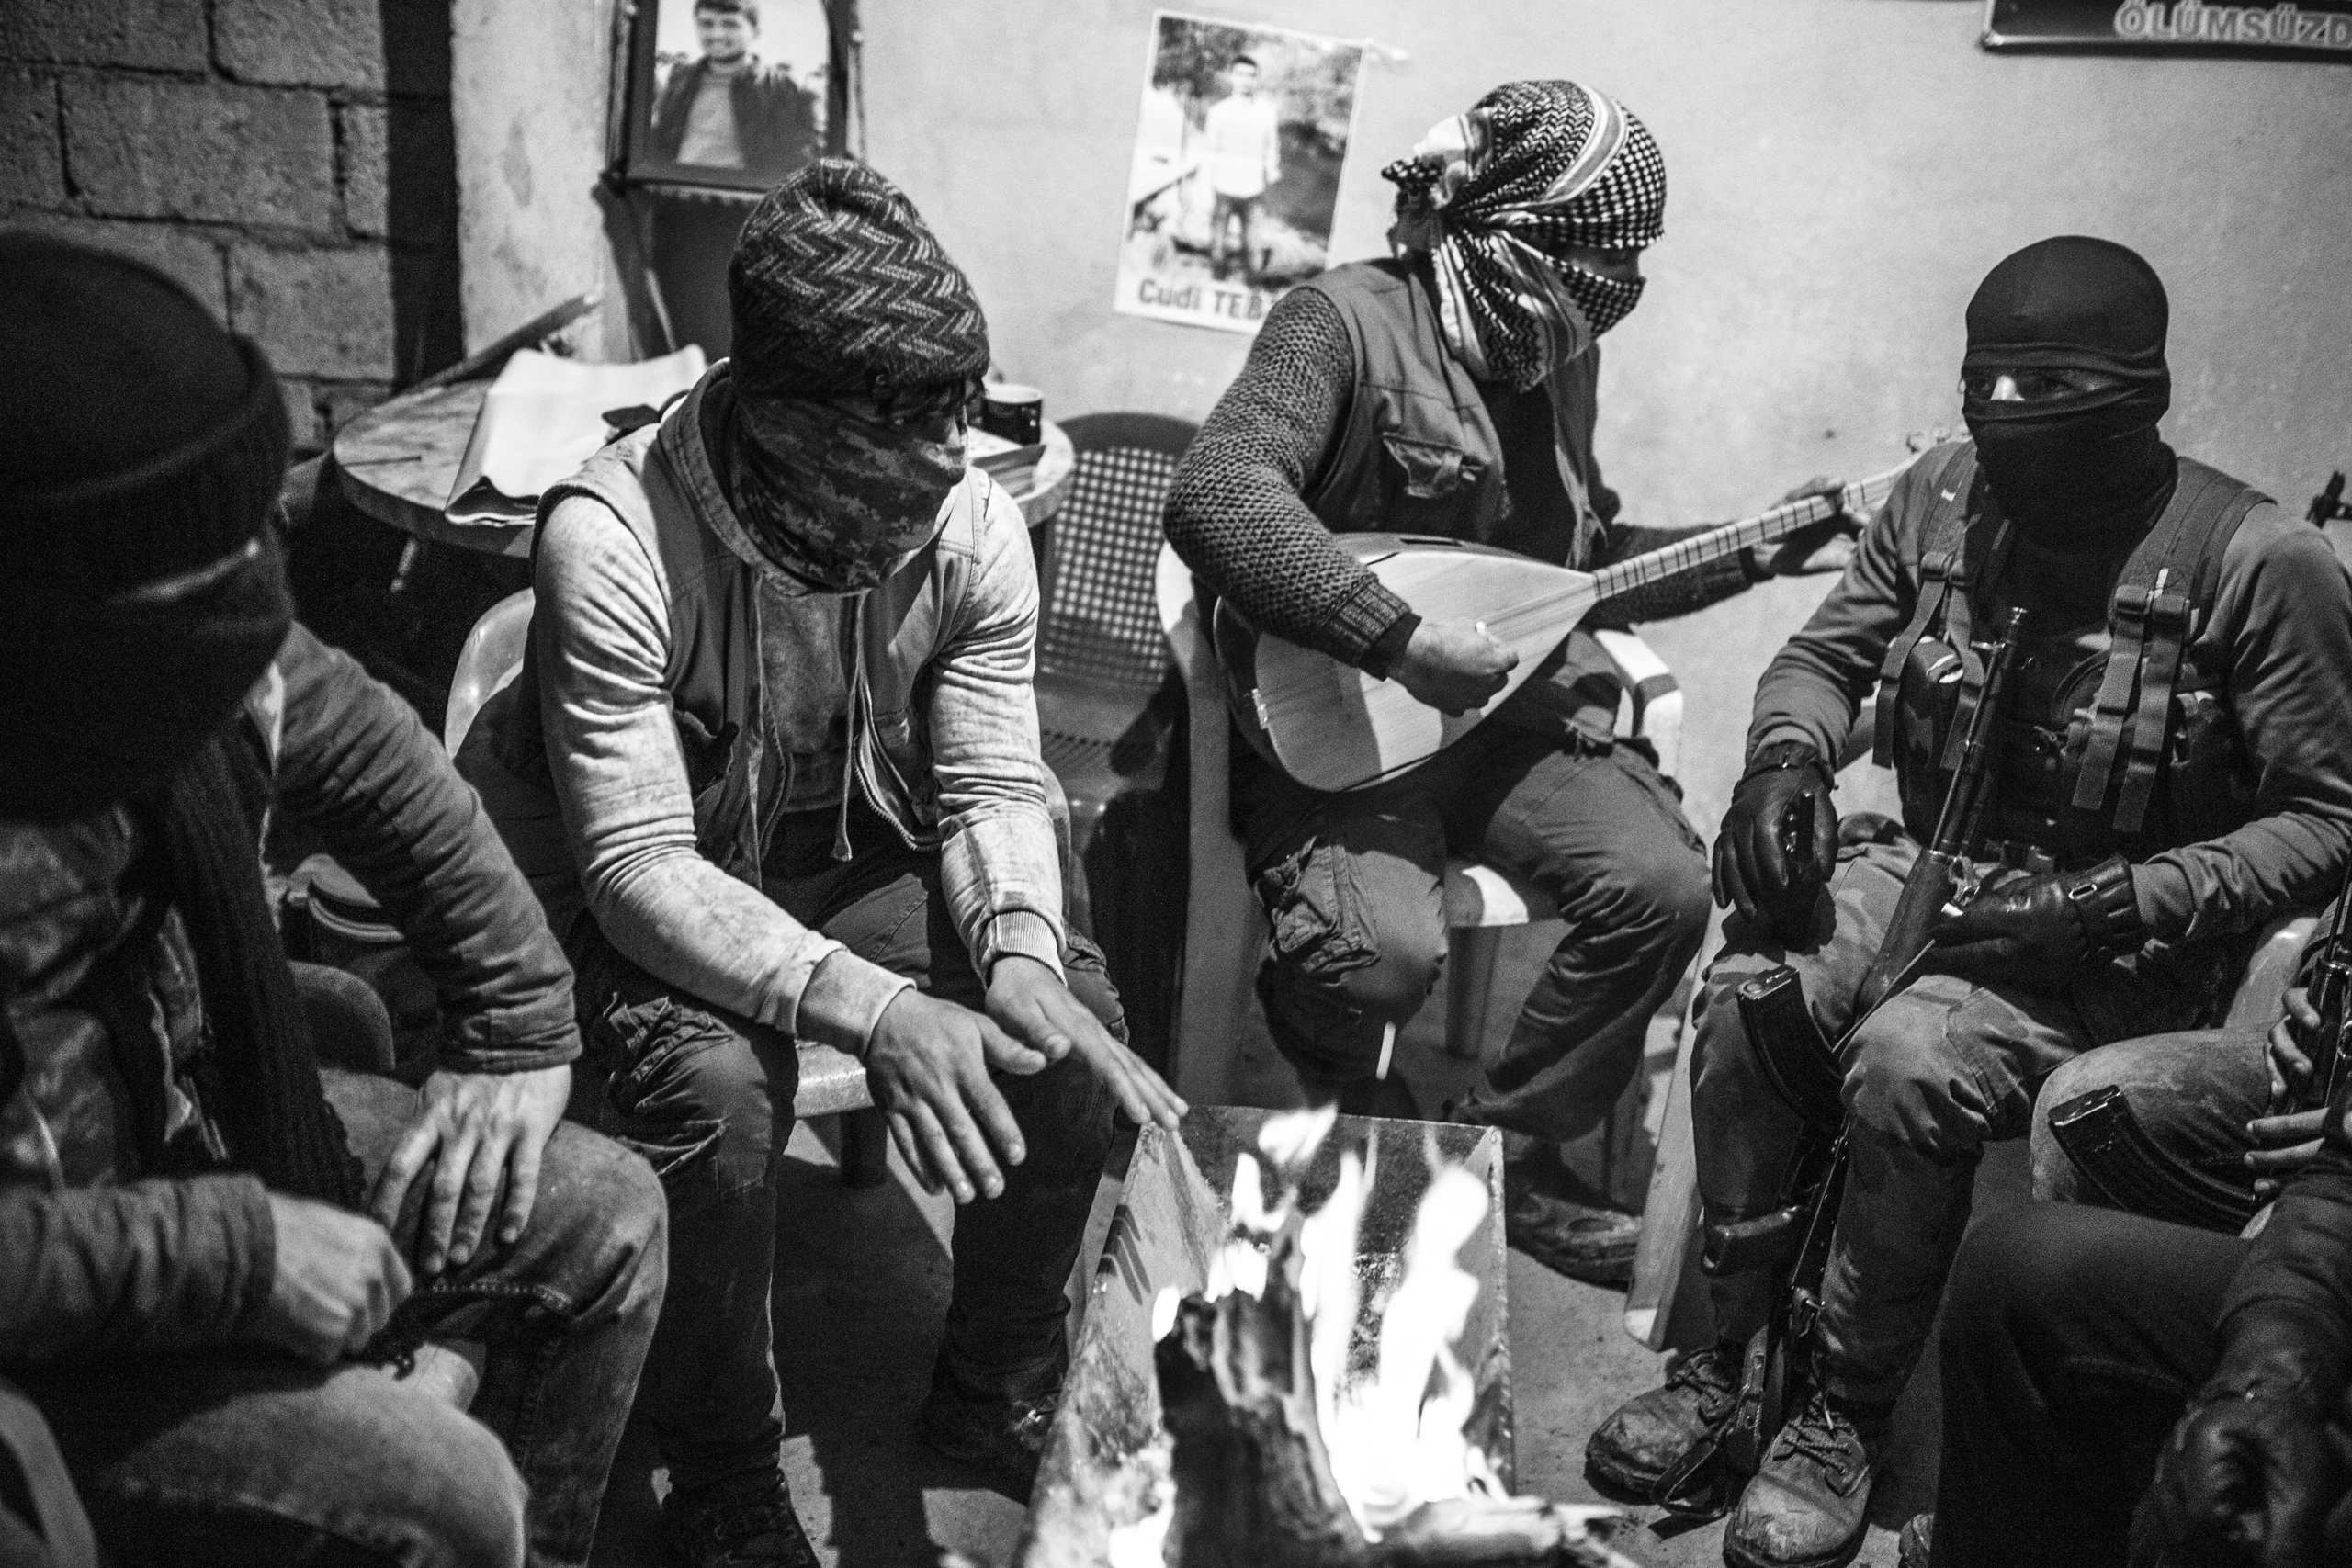 Members of the Civil Protection Units (YPS), a  Kurdish rebel group, warm up and play music near a fire in the YPS headquarters in Nusaybin, Turkey, Jan. 2016. The YPS was formed at the end of 2015 as a result of curfews imposed by the Turkish security forces and increased clashes.